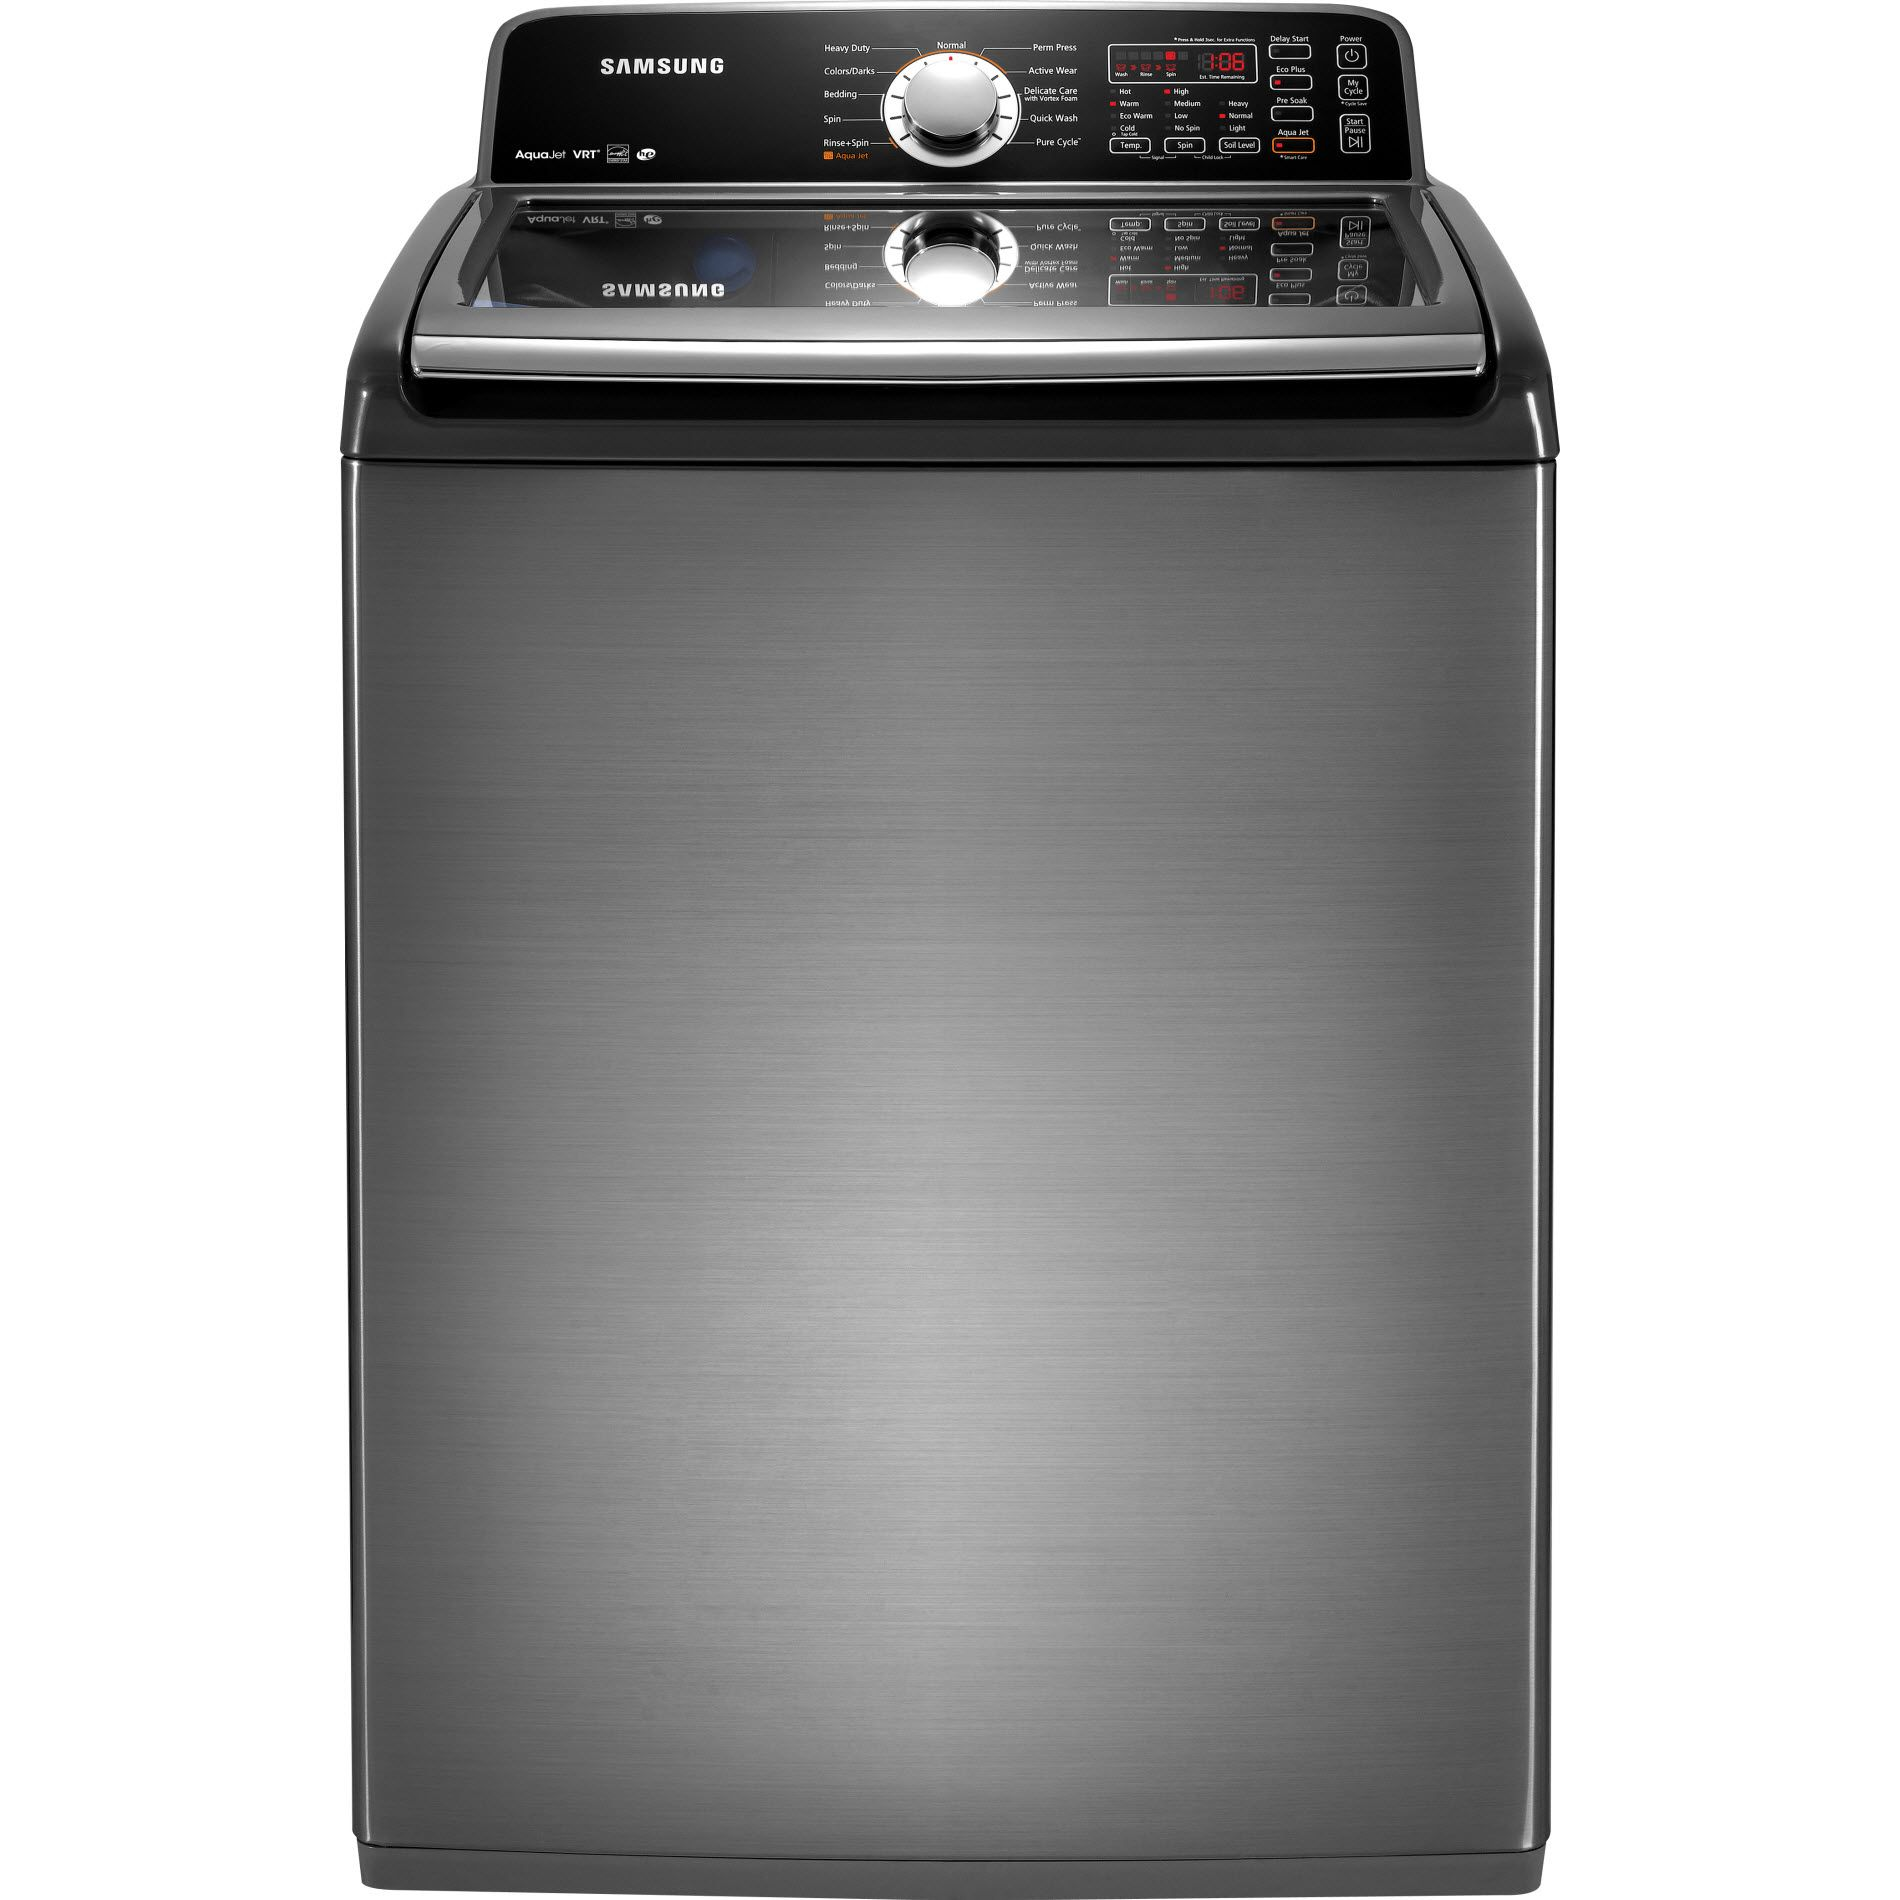 Samsung High Efficiency Top Load Washer